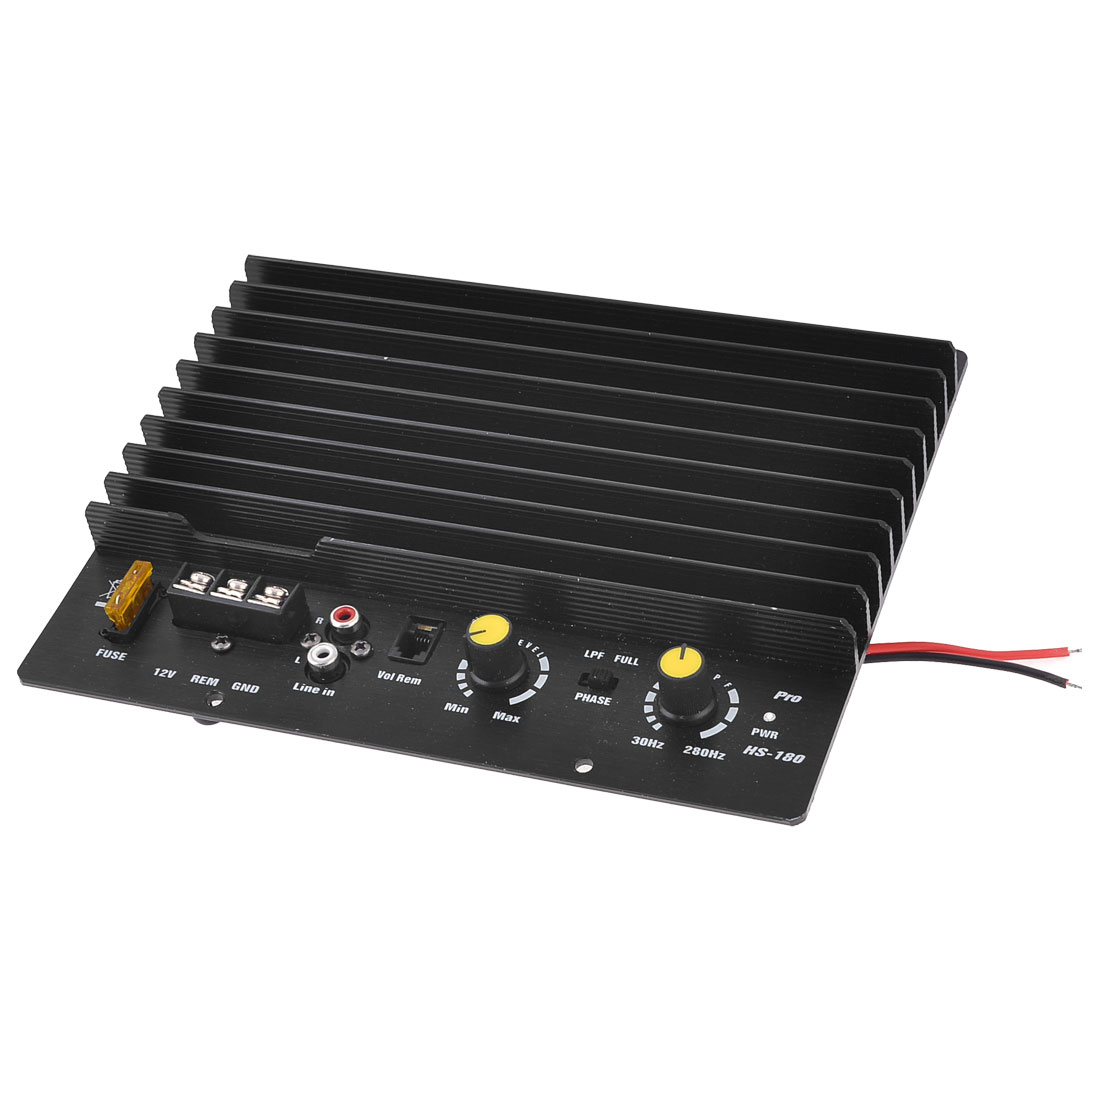 Automobile Car 2 Channel Aluminum Casing Stereo Audio Amplifier Black 12VDC